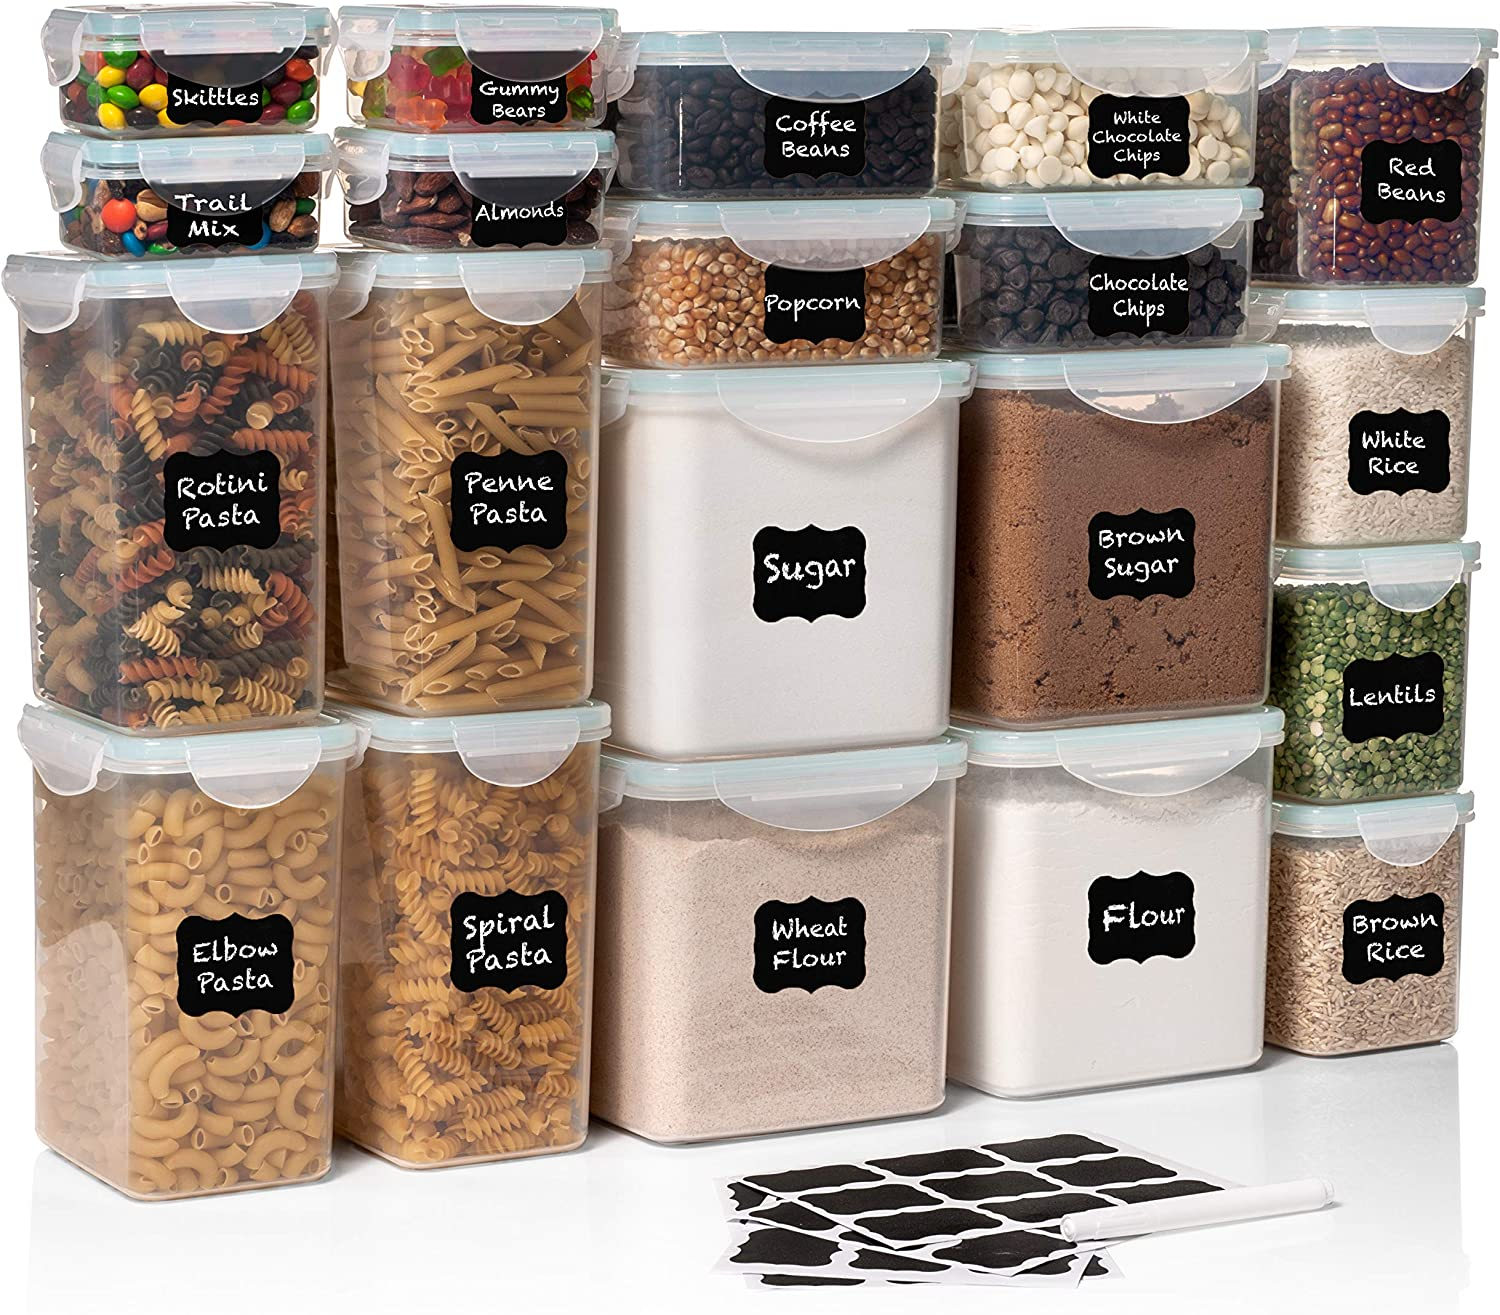 40 PC WIDE DEEP Food Storage Containers - Sugar, Flour Plastic Containers 40 pc (set of 20) - 36 FREE Labels & Marker - Airtight, Leakproof, BPA Free - Microwave, Freezer & Dishwasher Safe